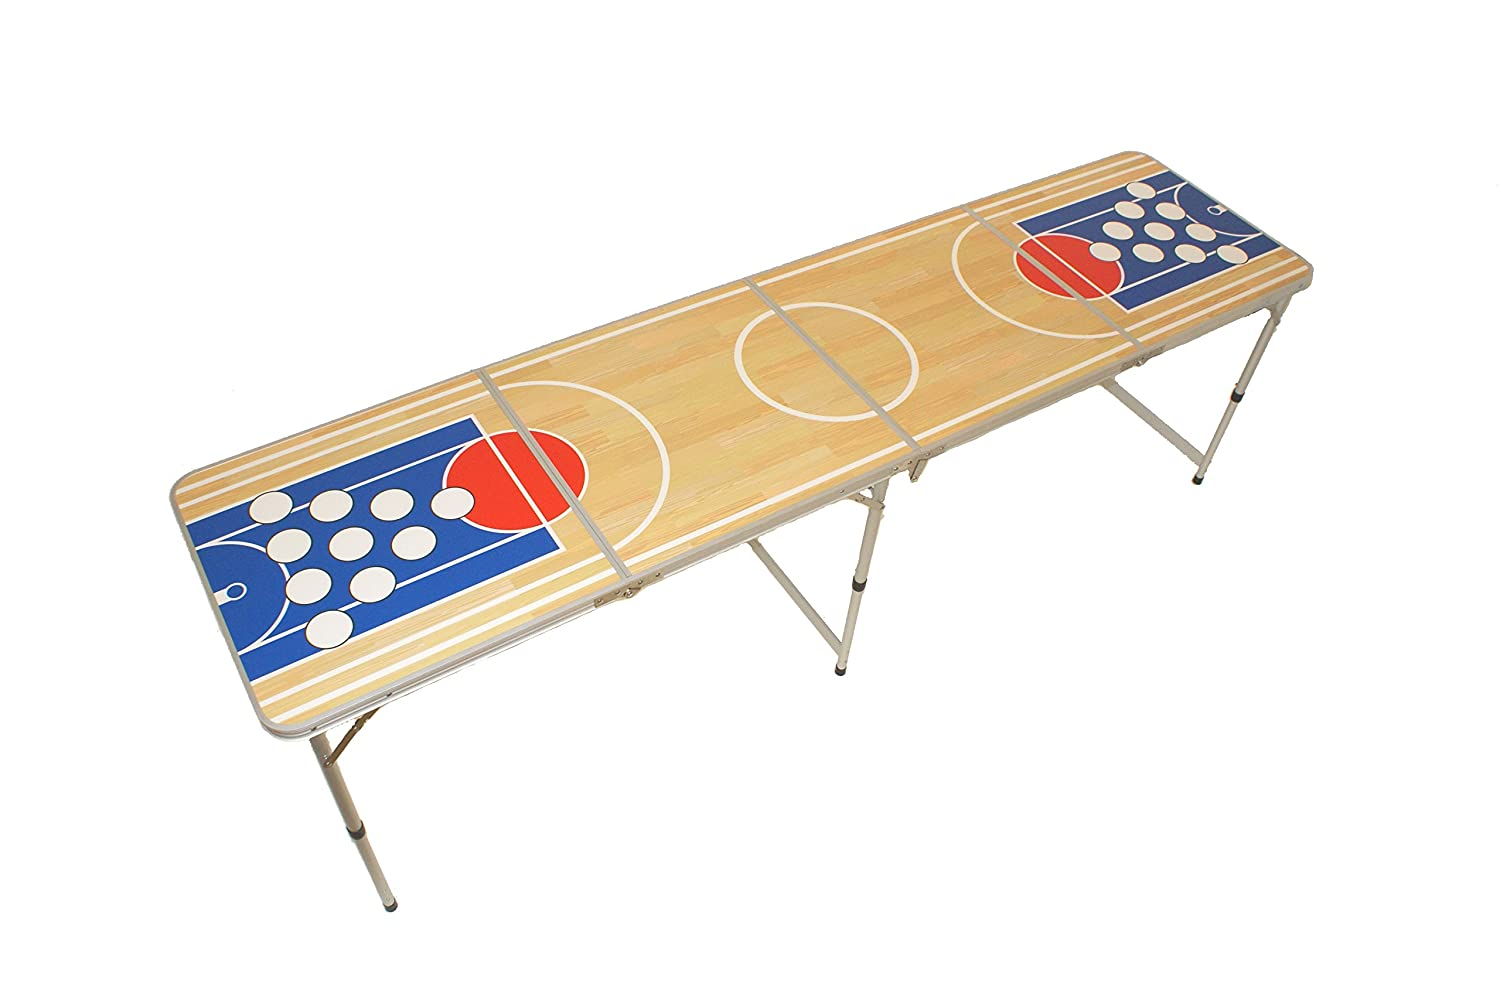 Beer pong table, beer pong table including rules, camping table, basket pong, 2 Drachenstore